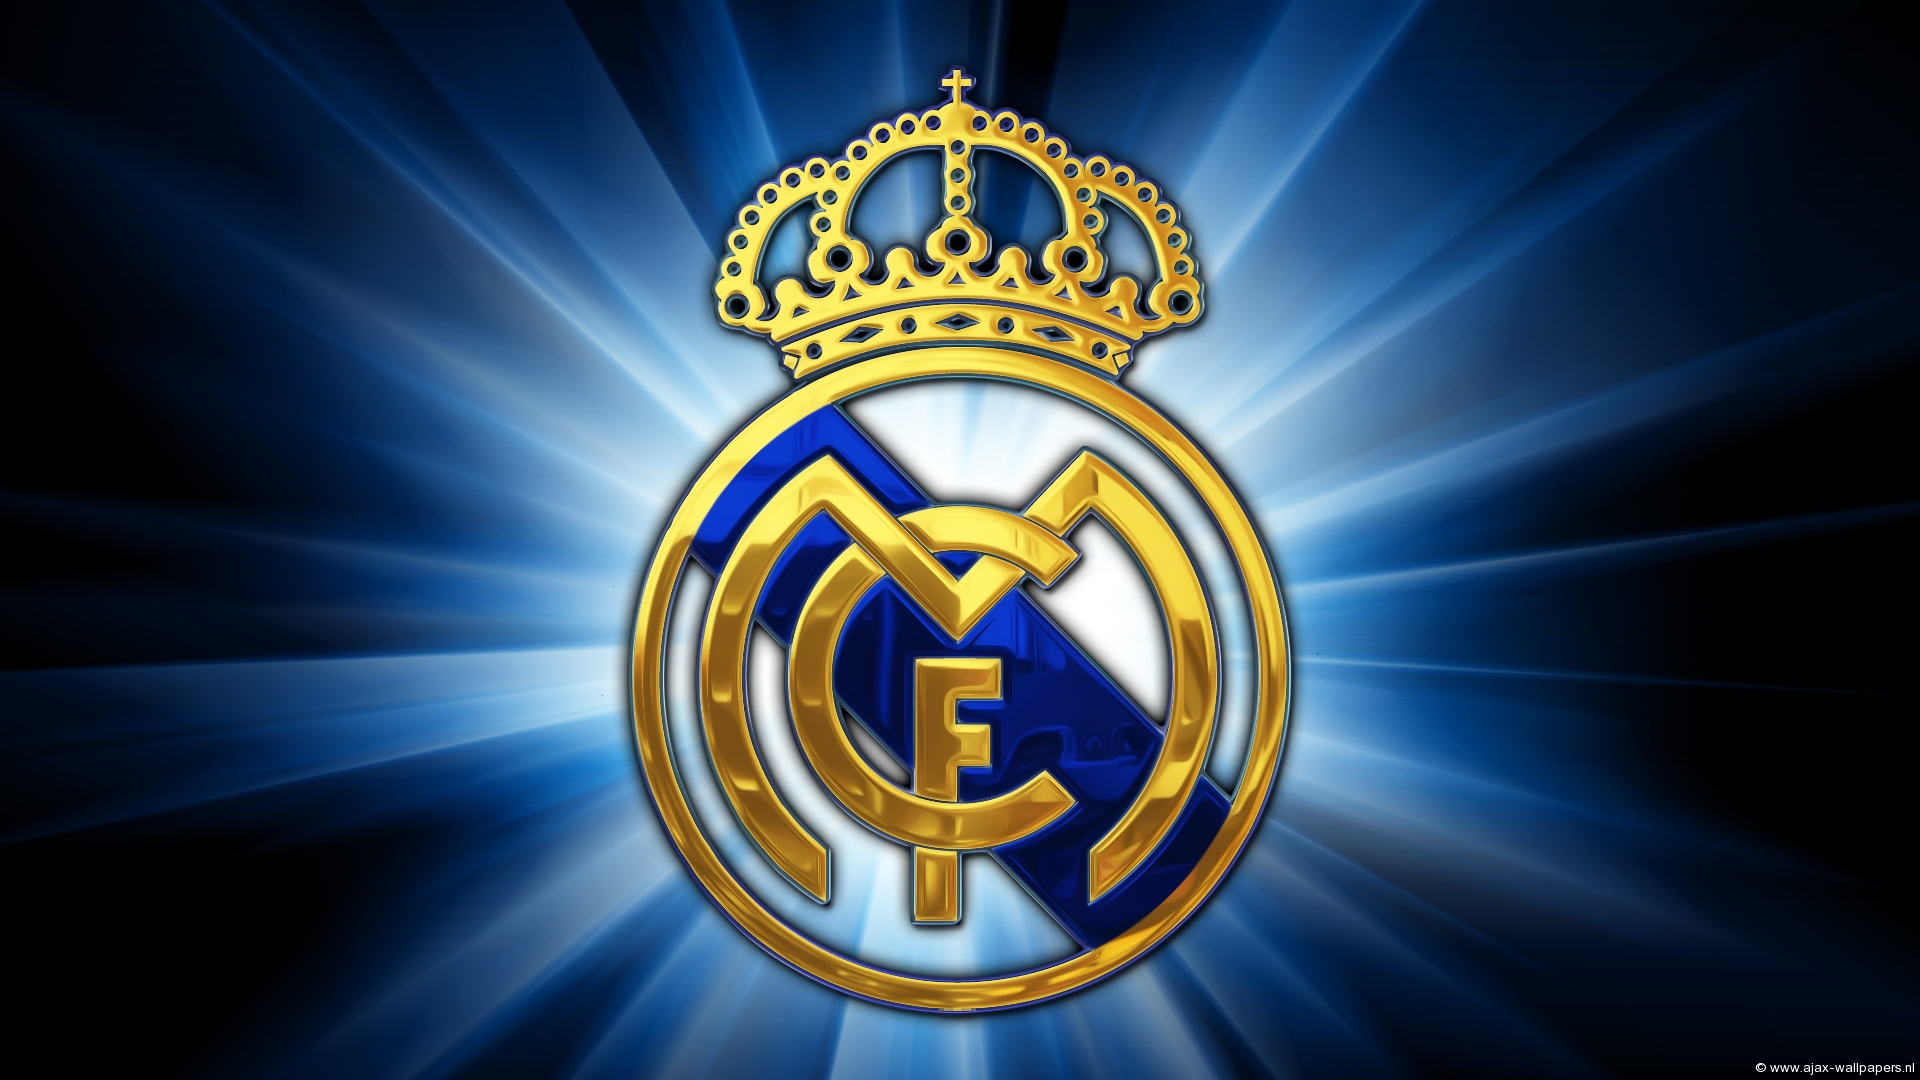 REAL MADRID C.F. | Tumblr